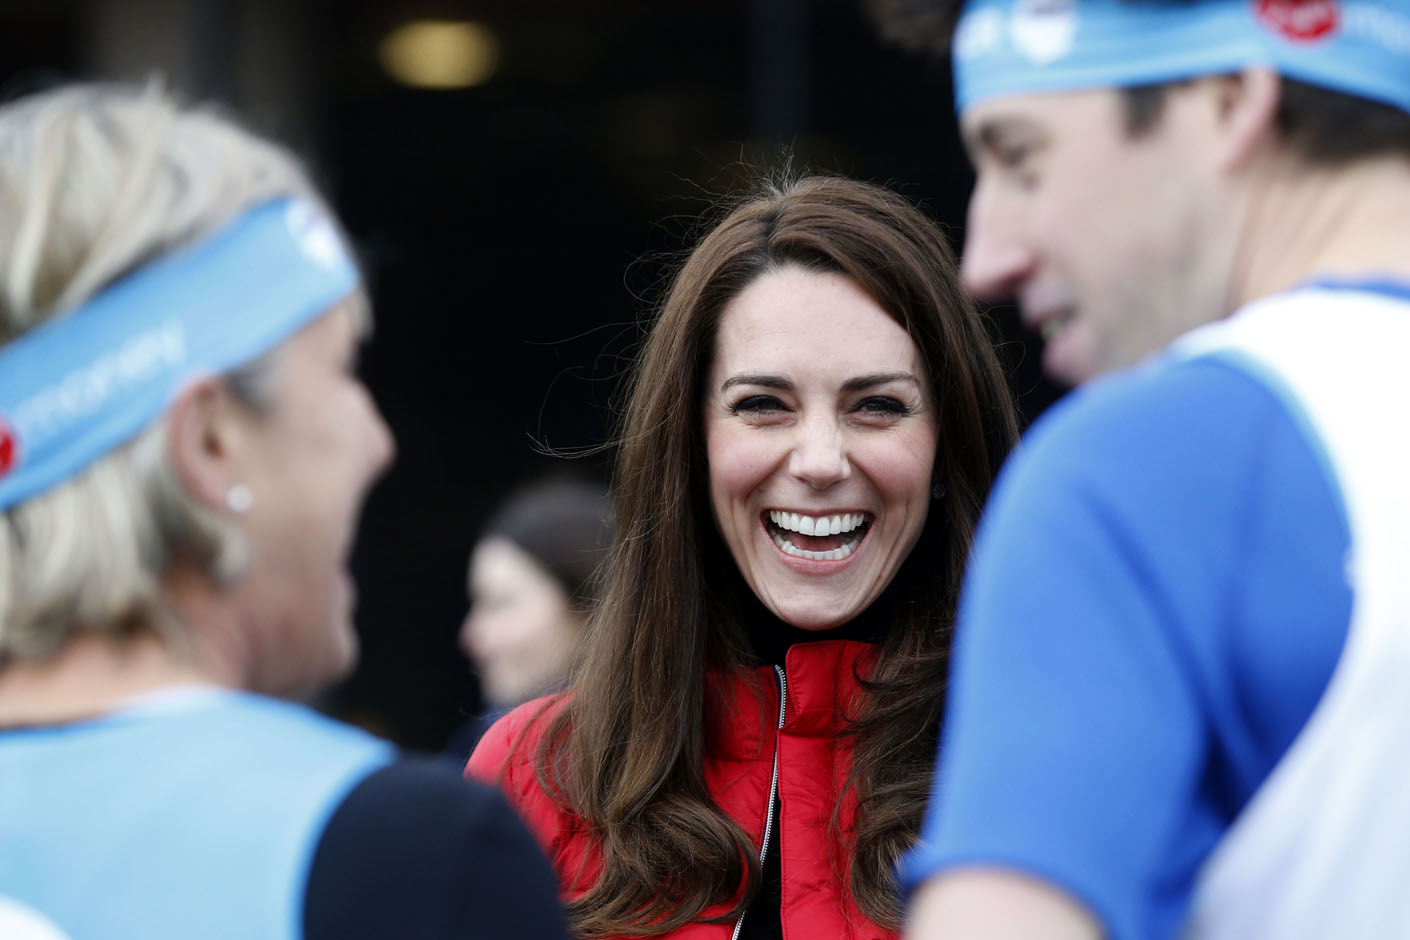 Duchess of Cambridge at Heads Together event